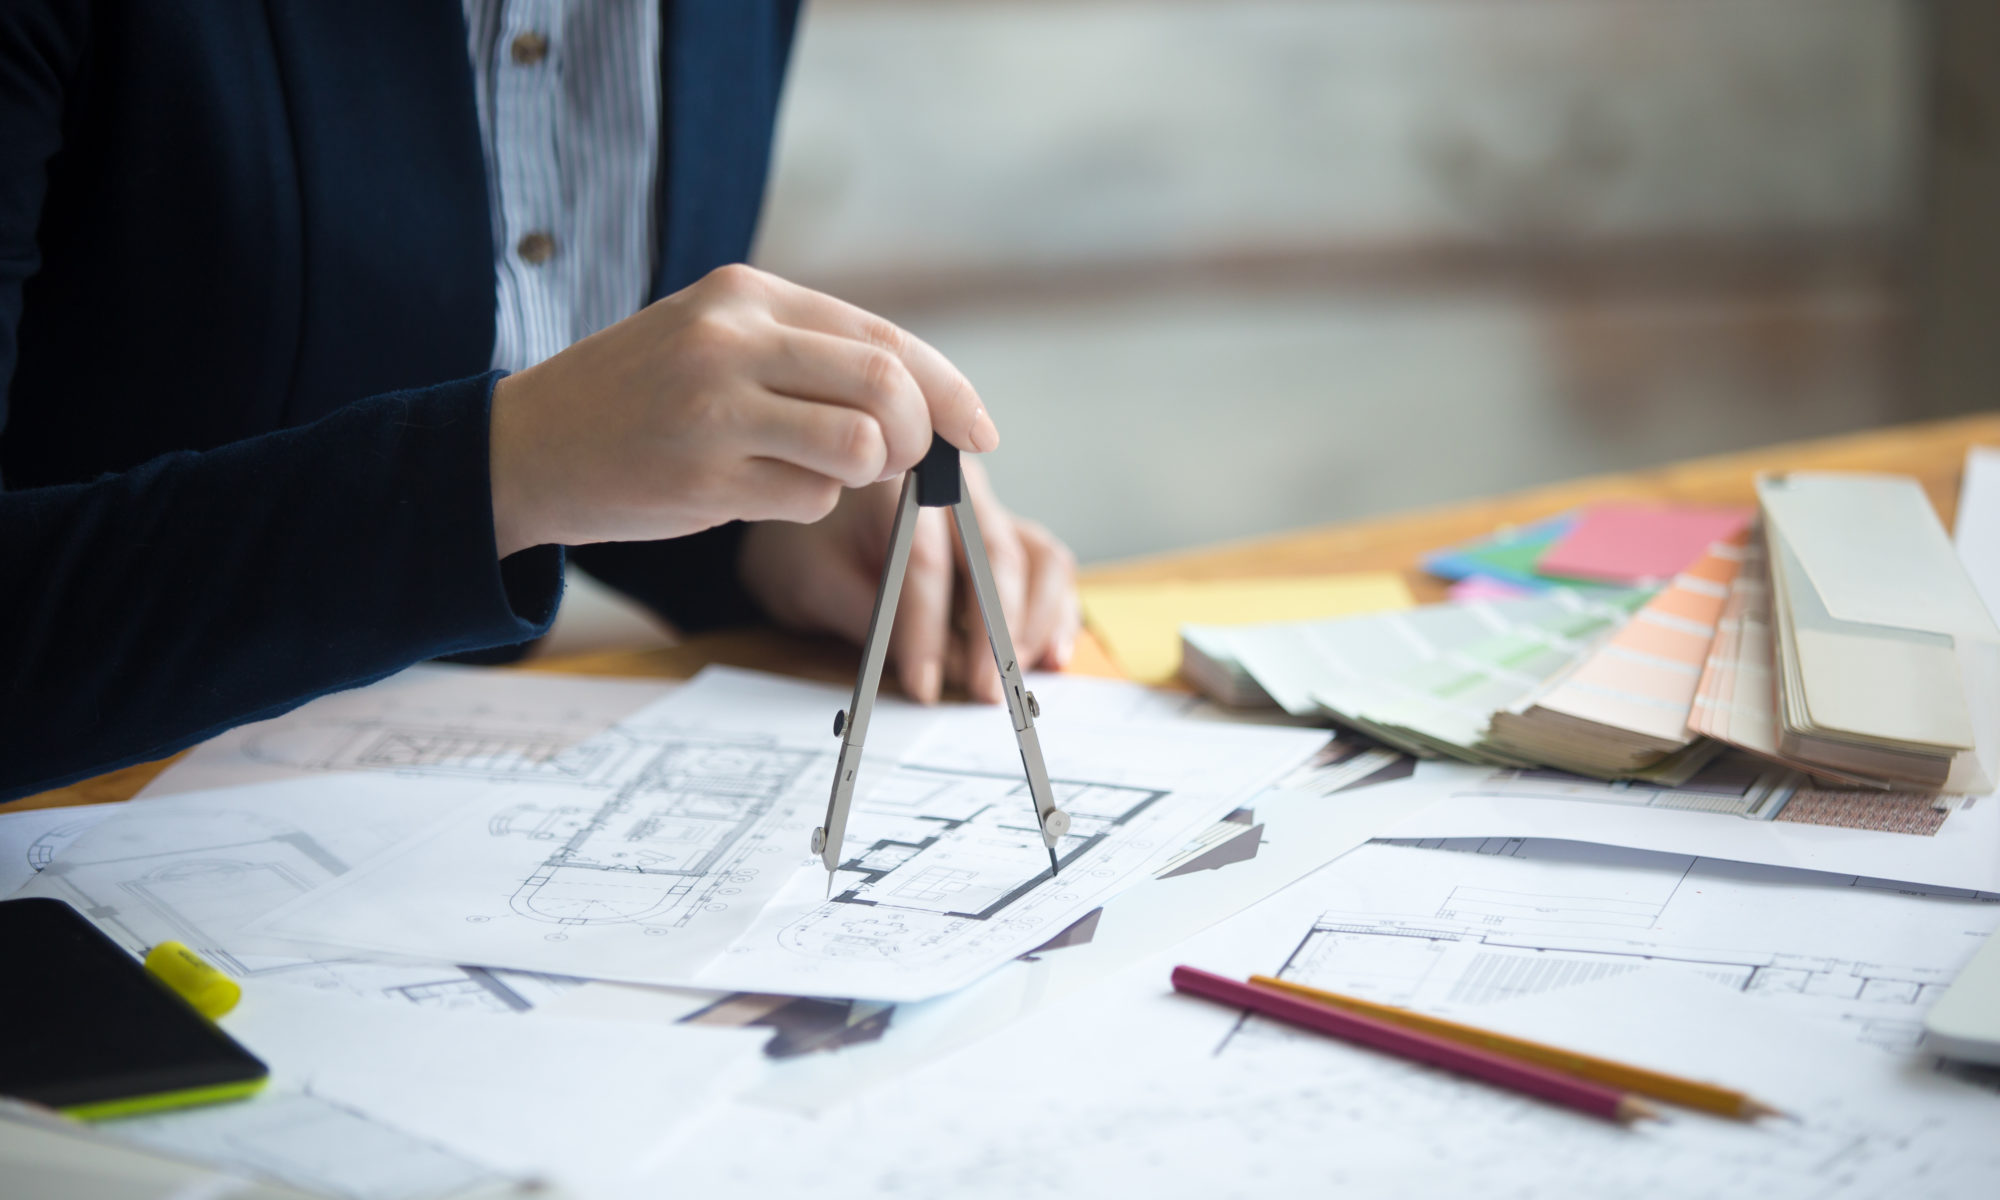 Close-up of hands of beautiful young designer person wearing suit using drawing compass on drafts. Attractive model working at office desk with blueprints for new project. Interior shot